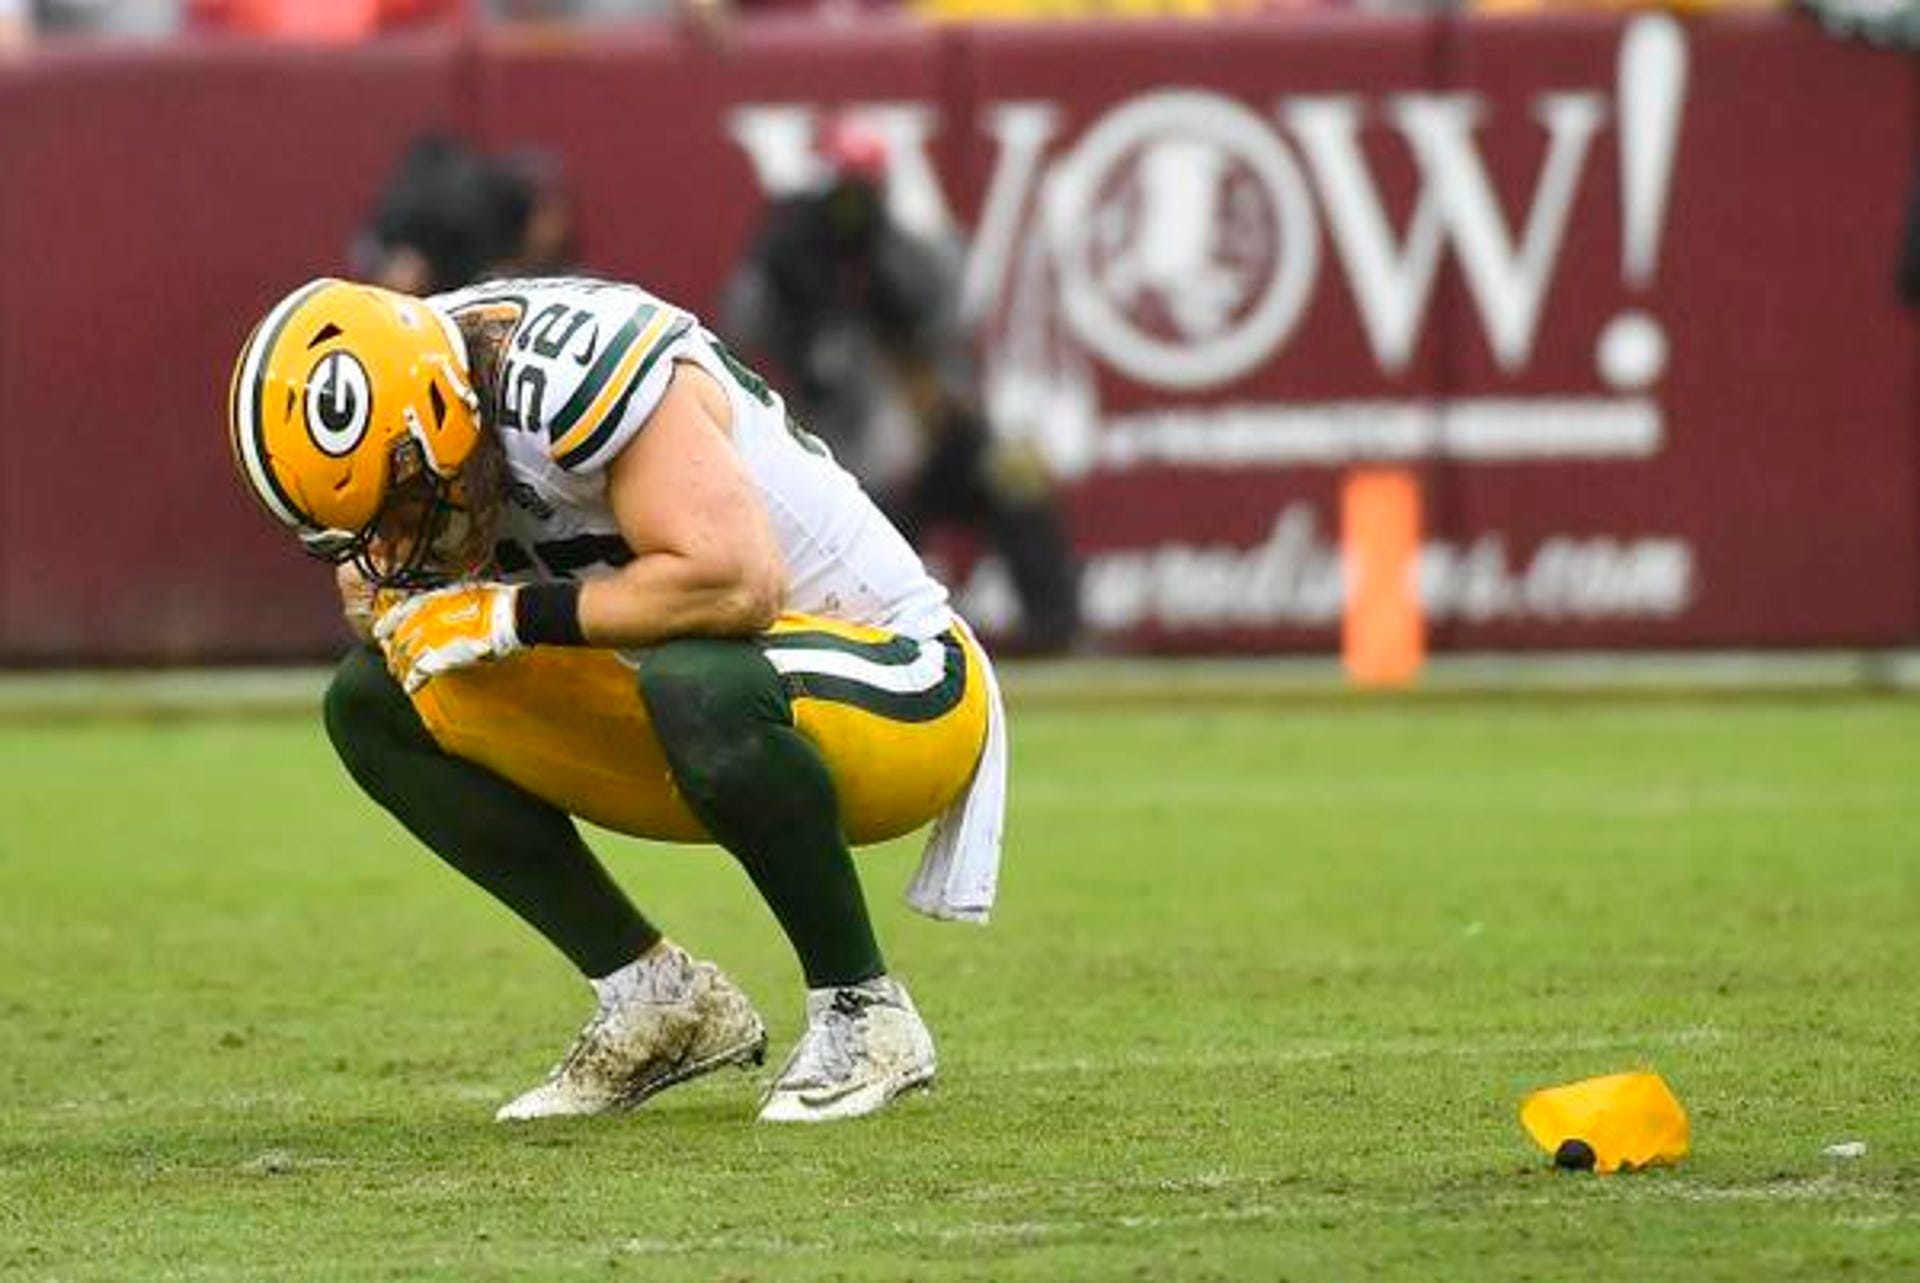 Sep 23, 2018; Landover, MD, USA; Green Bay Packers linebacker Clay Matthews (52) reacts after being called for a personal foul against the Washington Redskins during the second half at FedEx Field. Mandatory Credit: Brad Mills-USA TODAY Sports